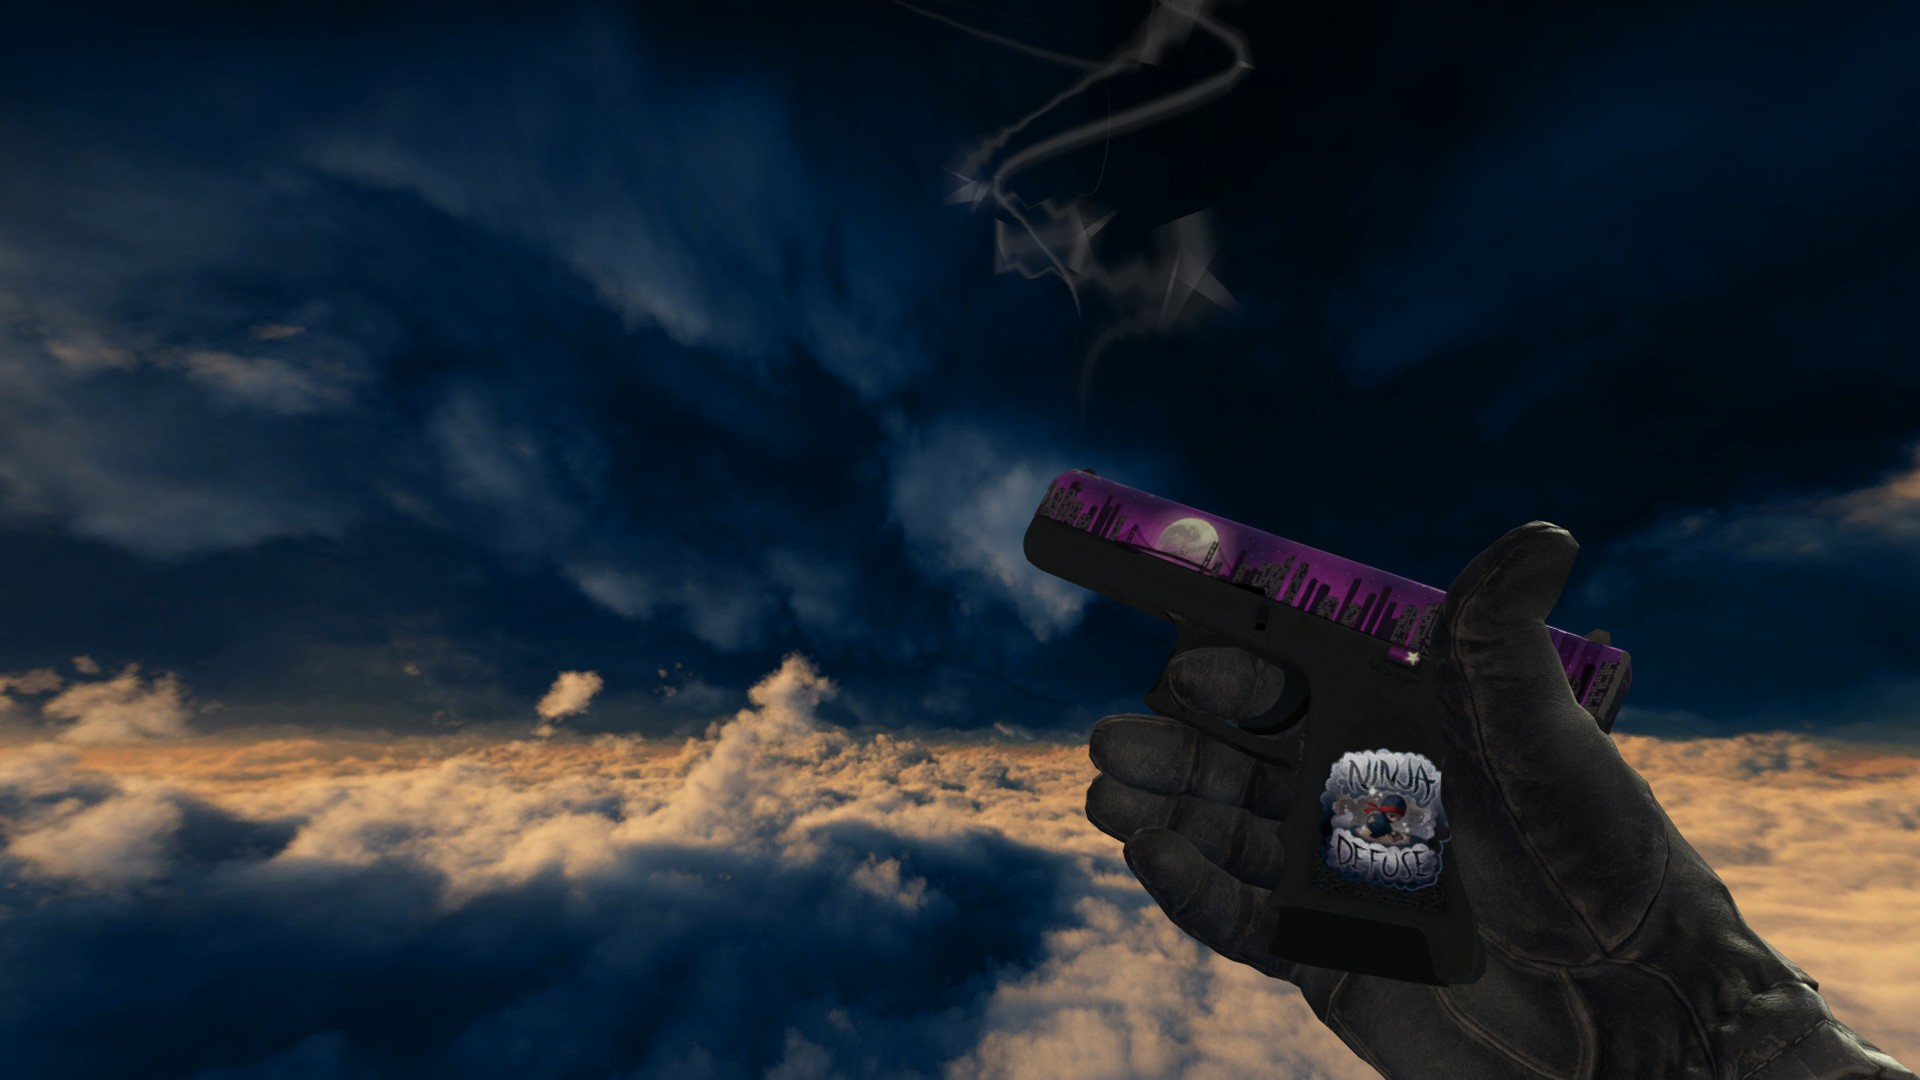 H Glock 18 Moonrise Field Tested With Star W 7 Keys